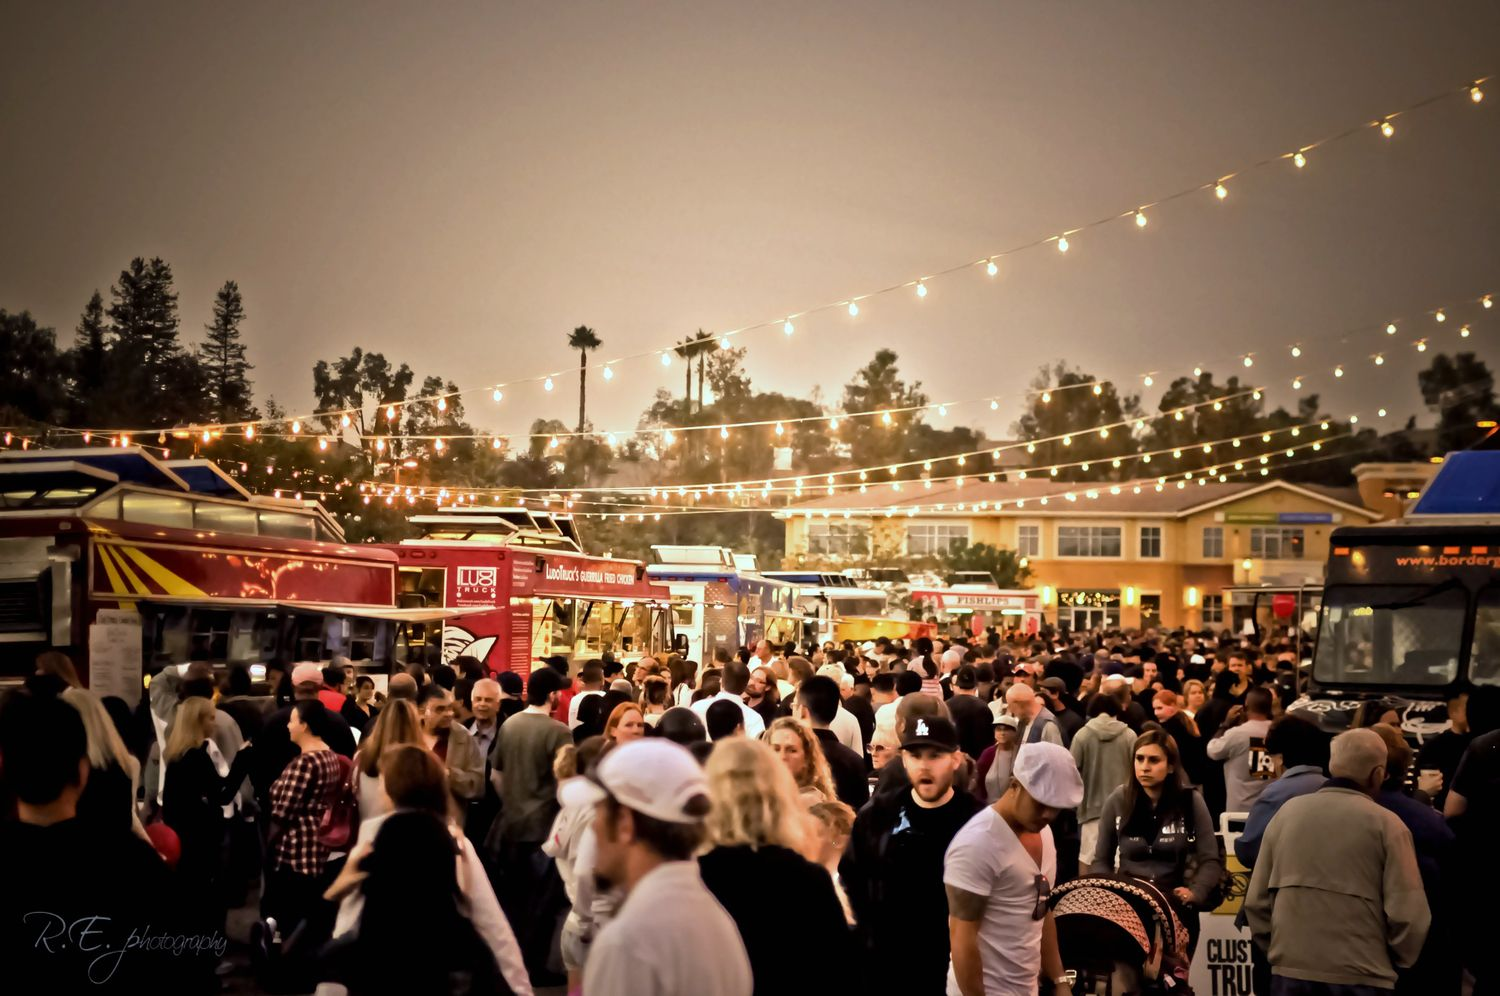 food truck festival Google Search Arches Pinterest